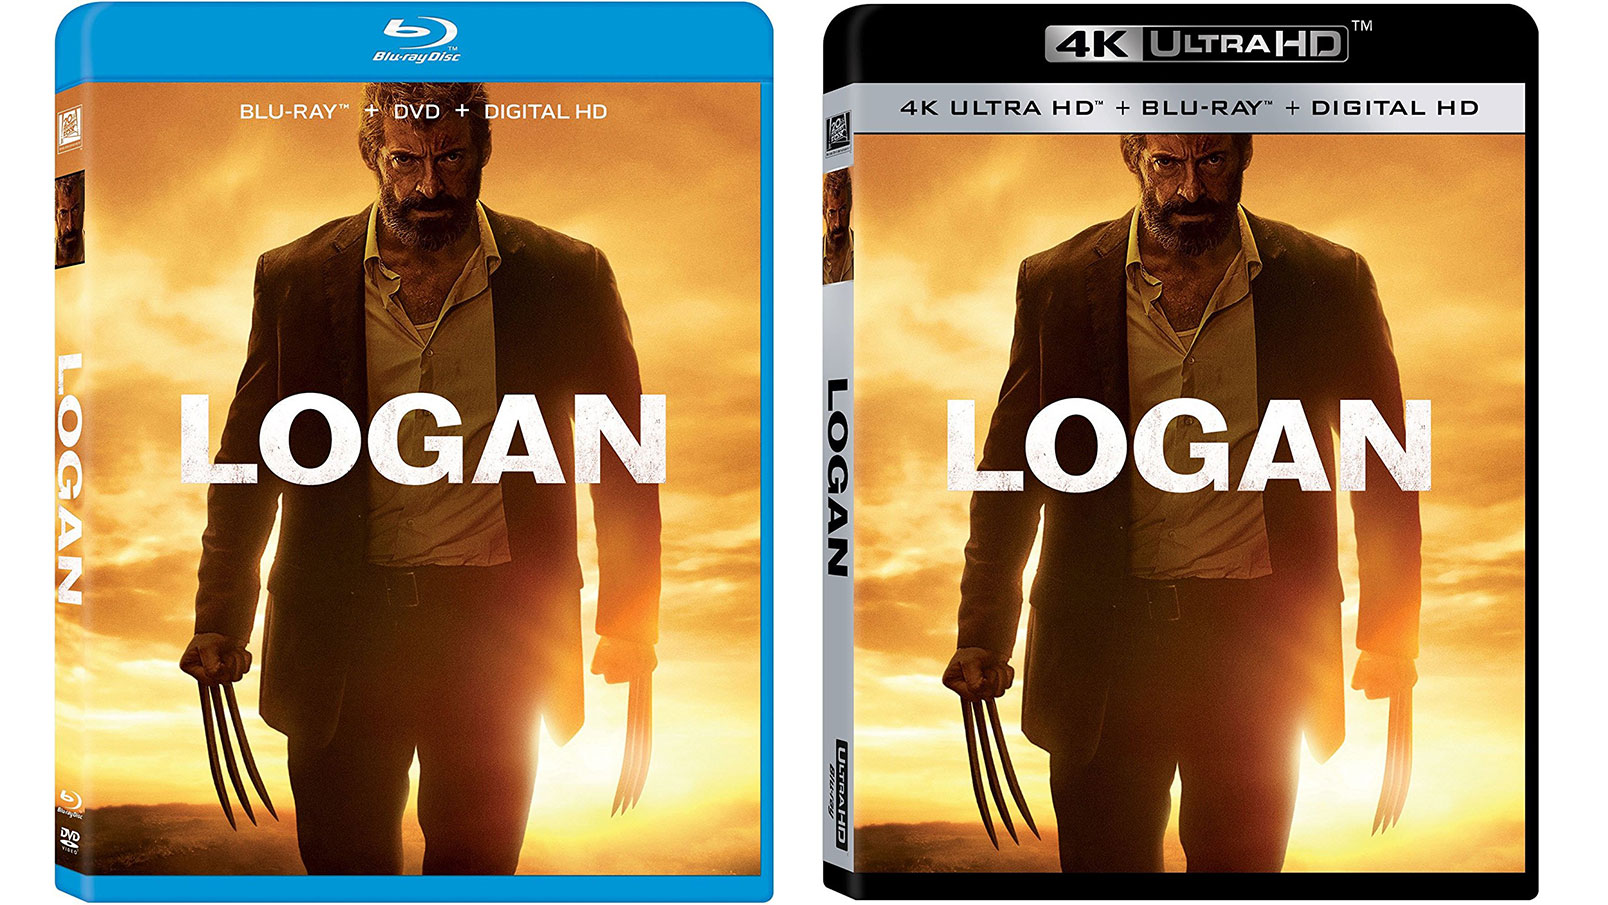 logan-blu-ray-4k-ultra-hd-2up